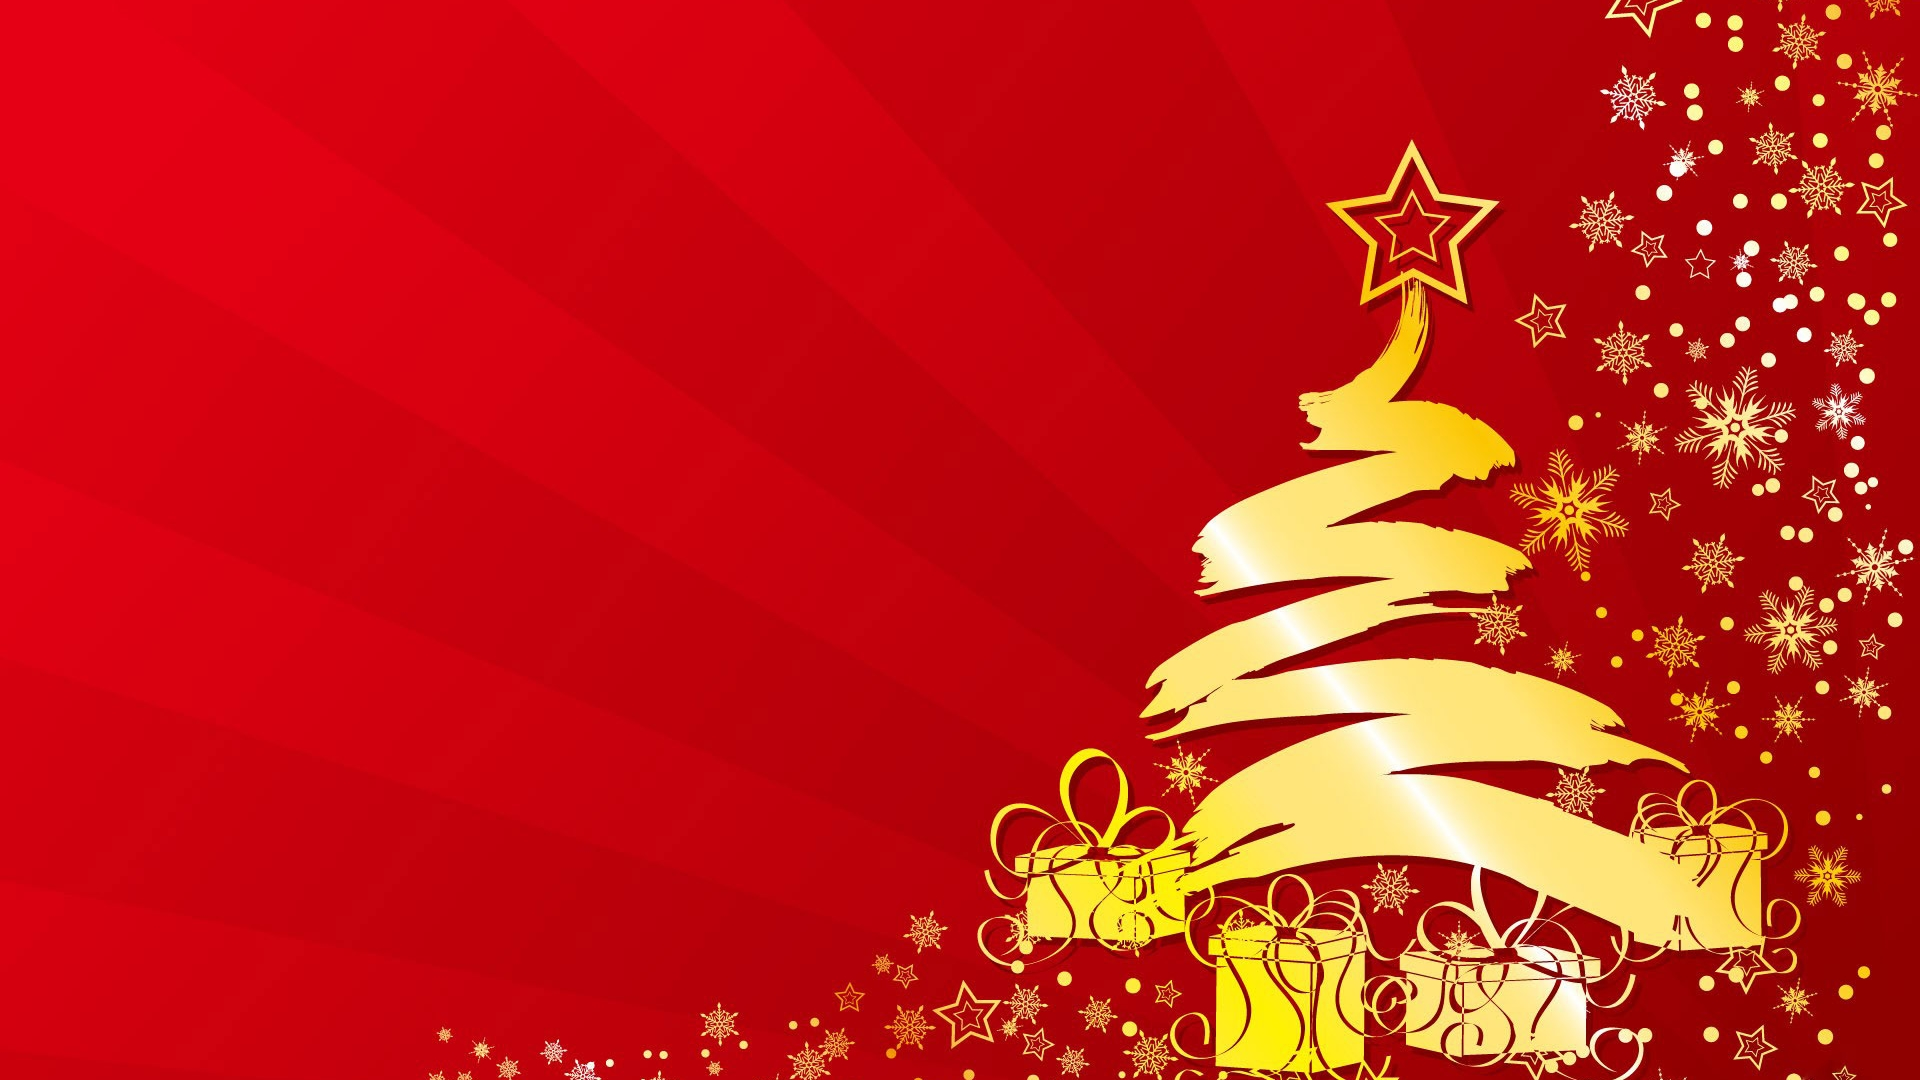 xmas wallpapers desktops live live christmas wallpaper desktop 1920x1080